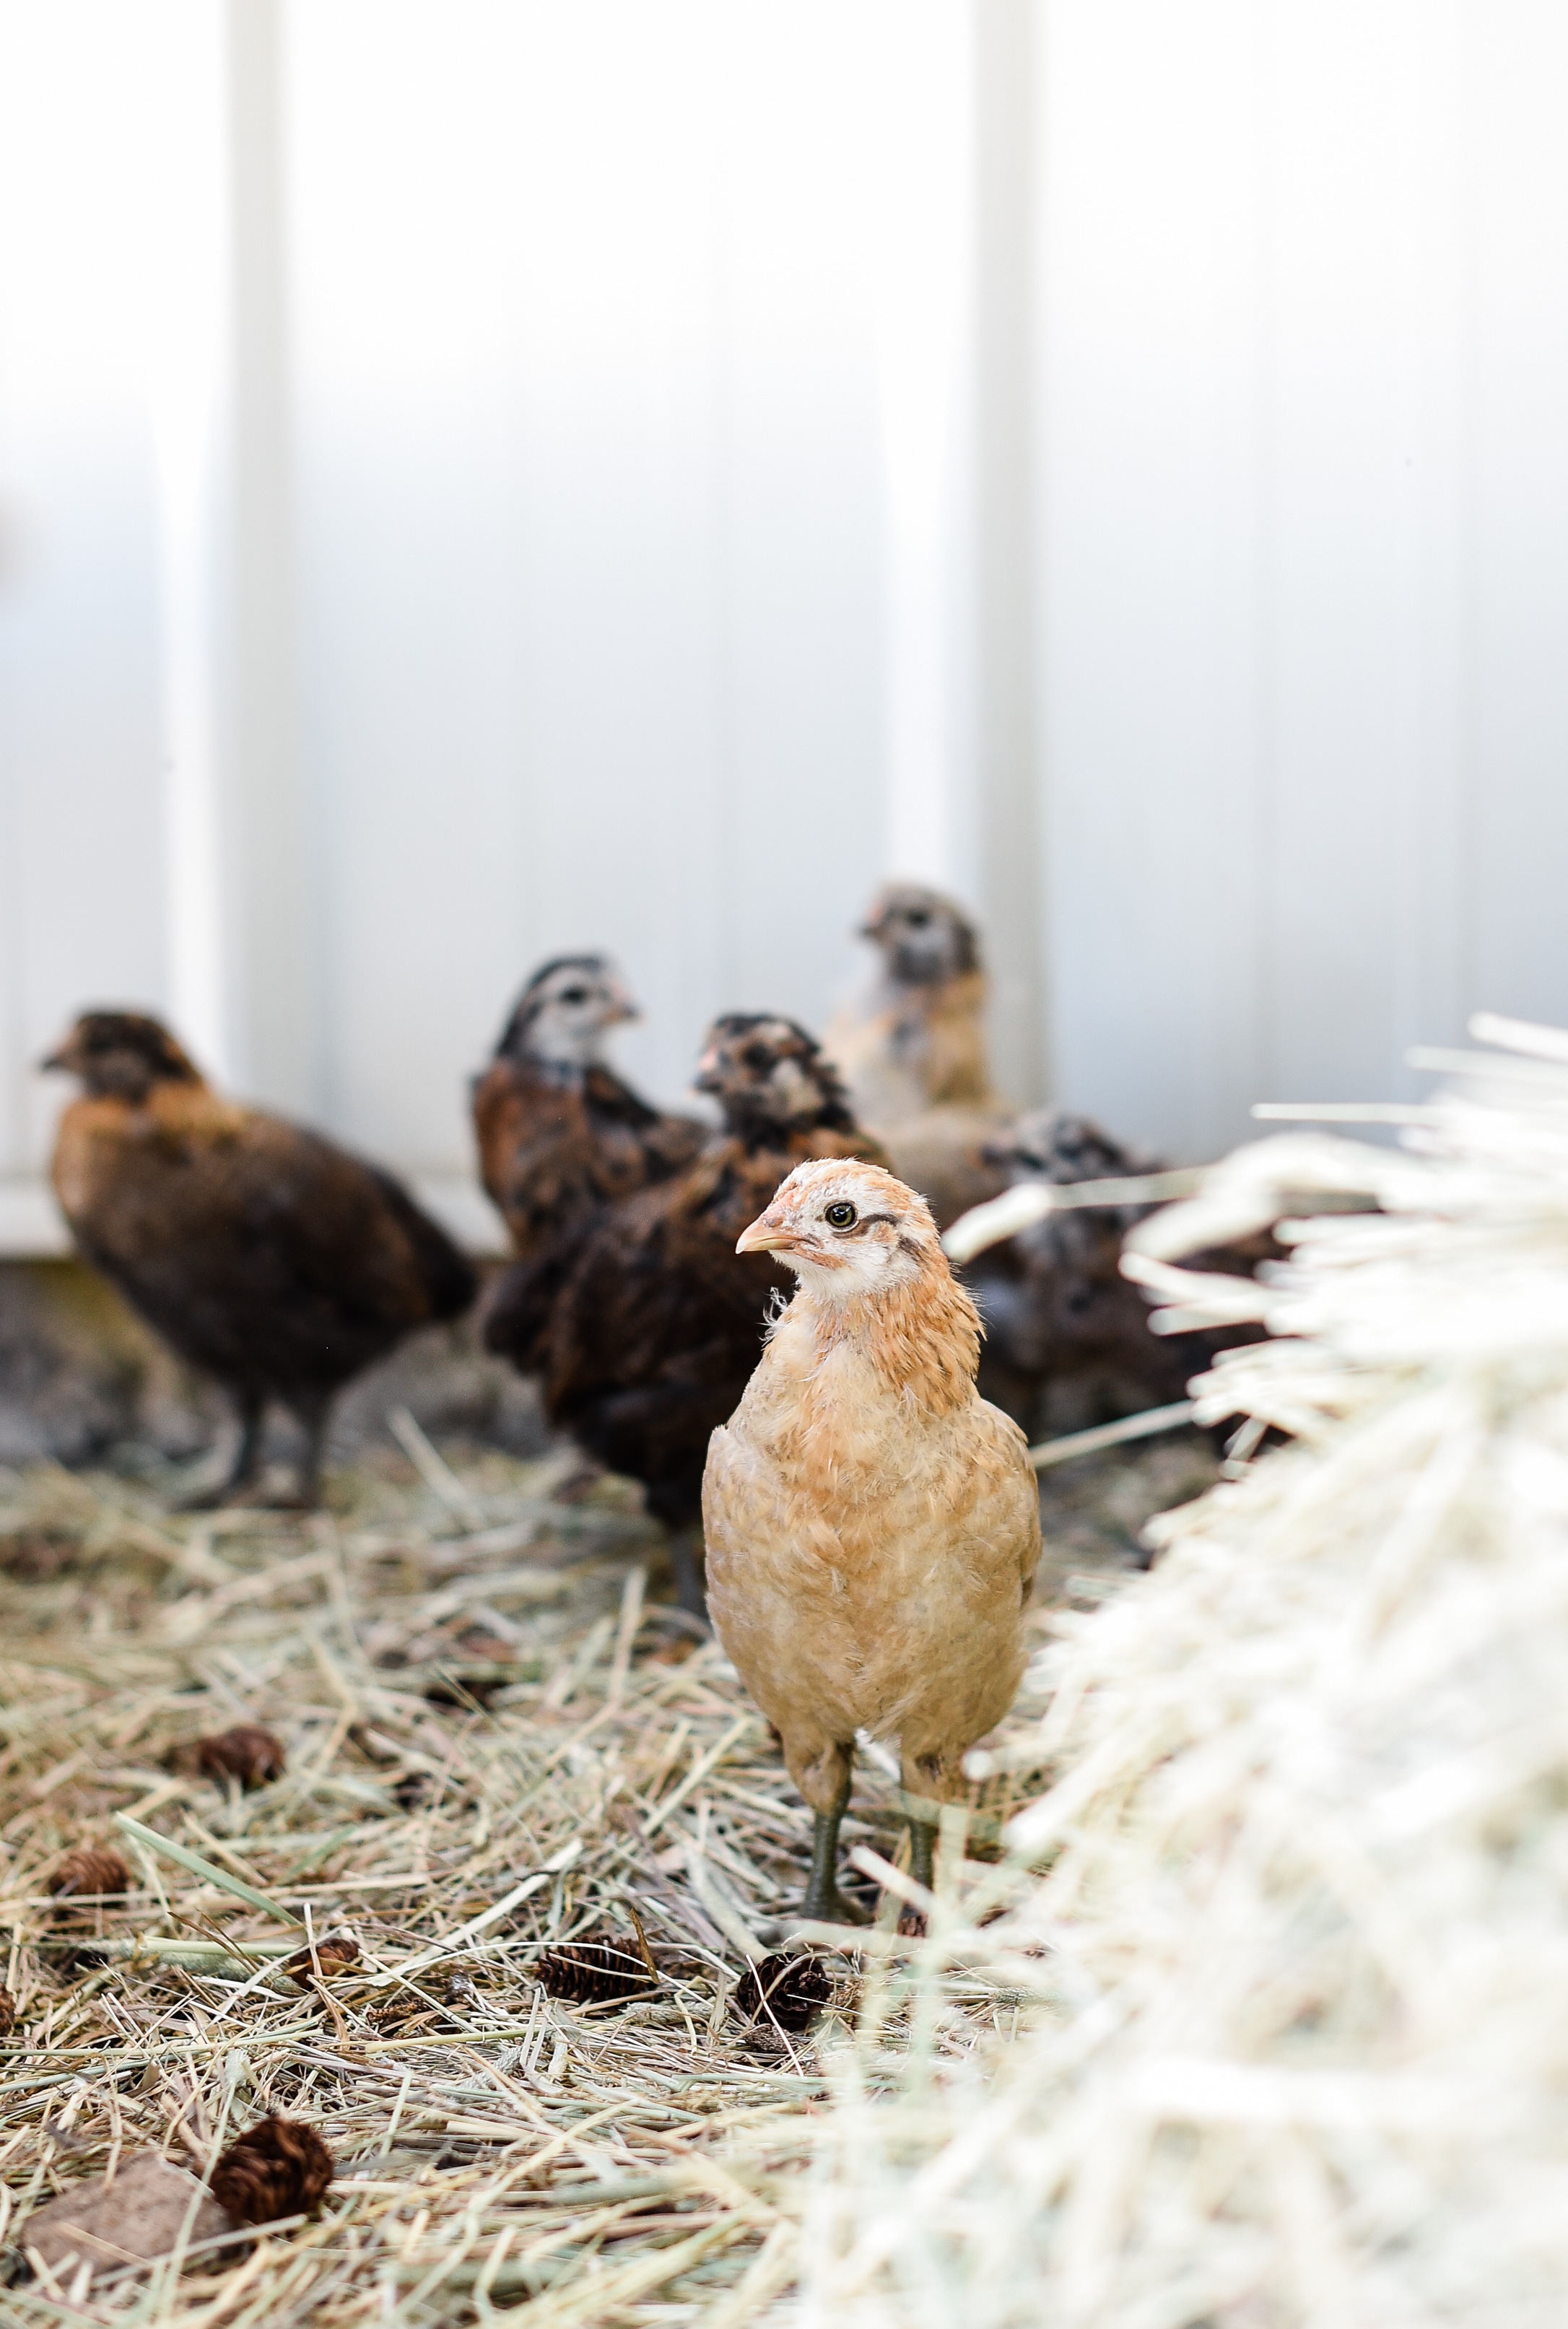 How to introduce chickens to chicks? - If you have mature hens, it's important to keep the chicks and hens separated until they are introduced and adjusted. The older hens will gang up on the chicks, and it won't make for a pretty sight! I have found it is best to place a small run for the chicks near the mature hens. This allows the mature hens to get to know the chicks without contact.